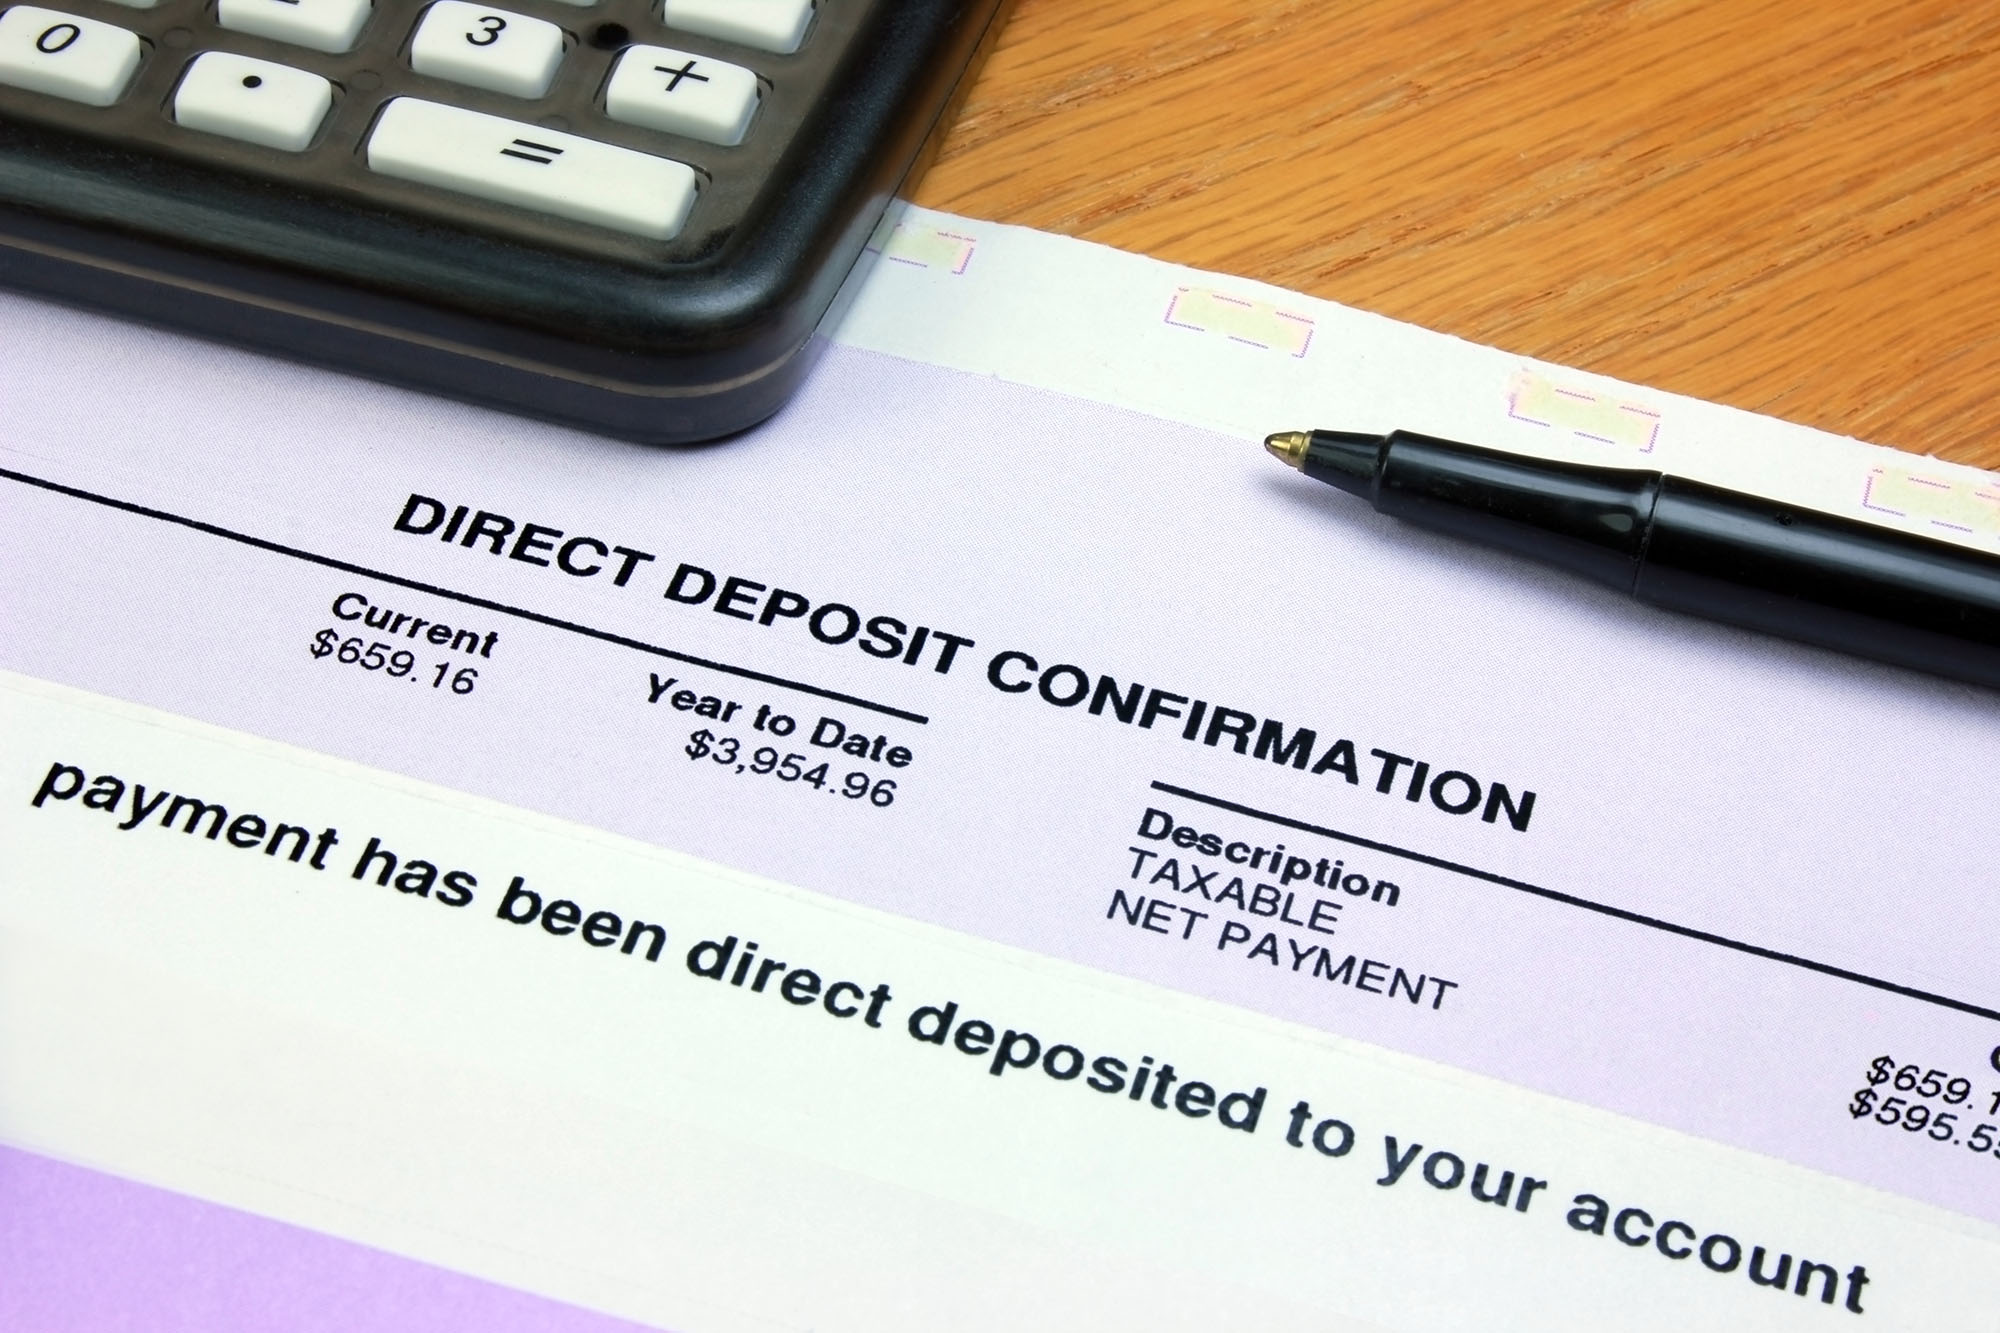 3 Ways Direct Deposit Helps You Save